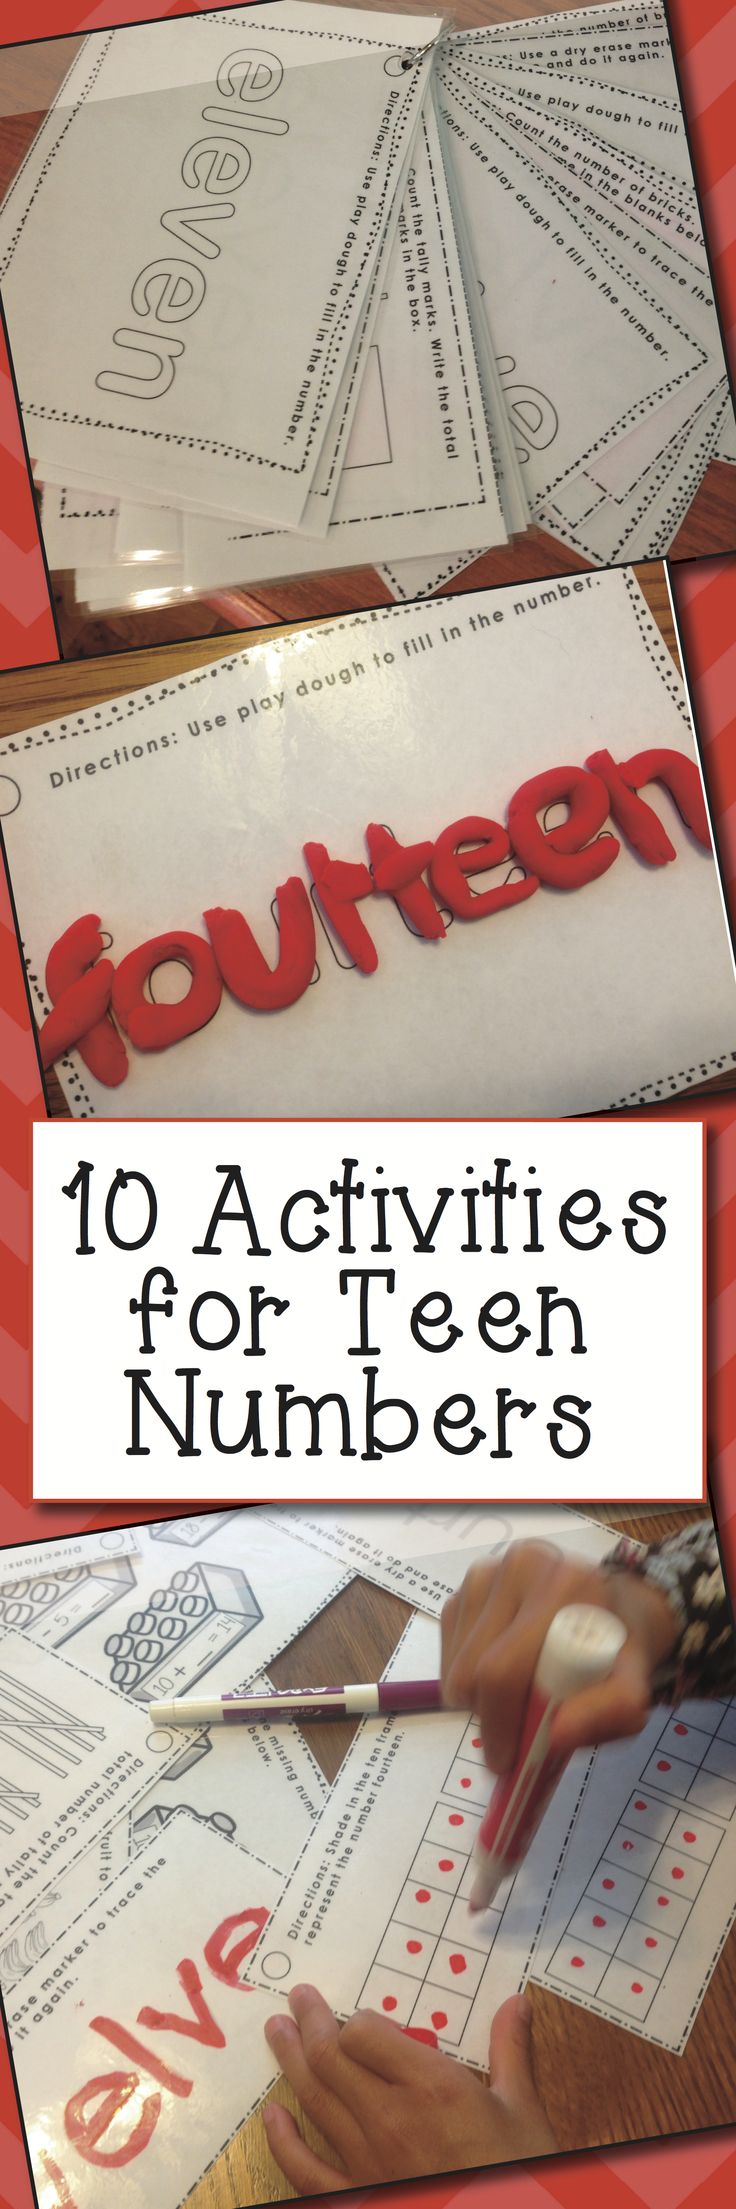 10 Teen Number Activities! Try the activities for Number 11 COMPLETELY FOR FREE! Check out this bundle and find the link to the FREE Number 11 activities in my TpT store!